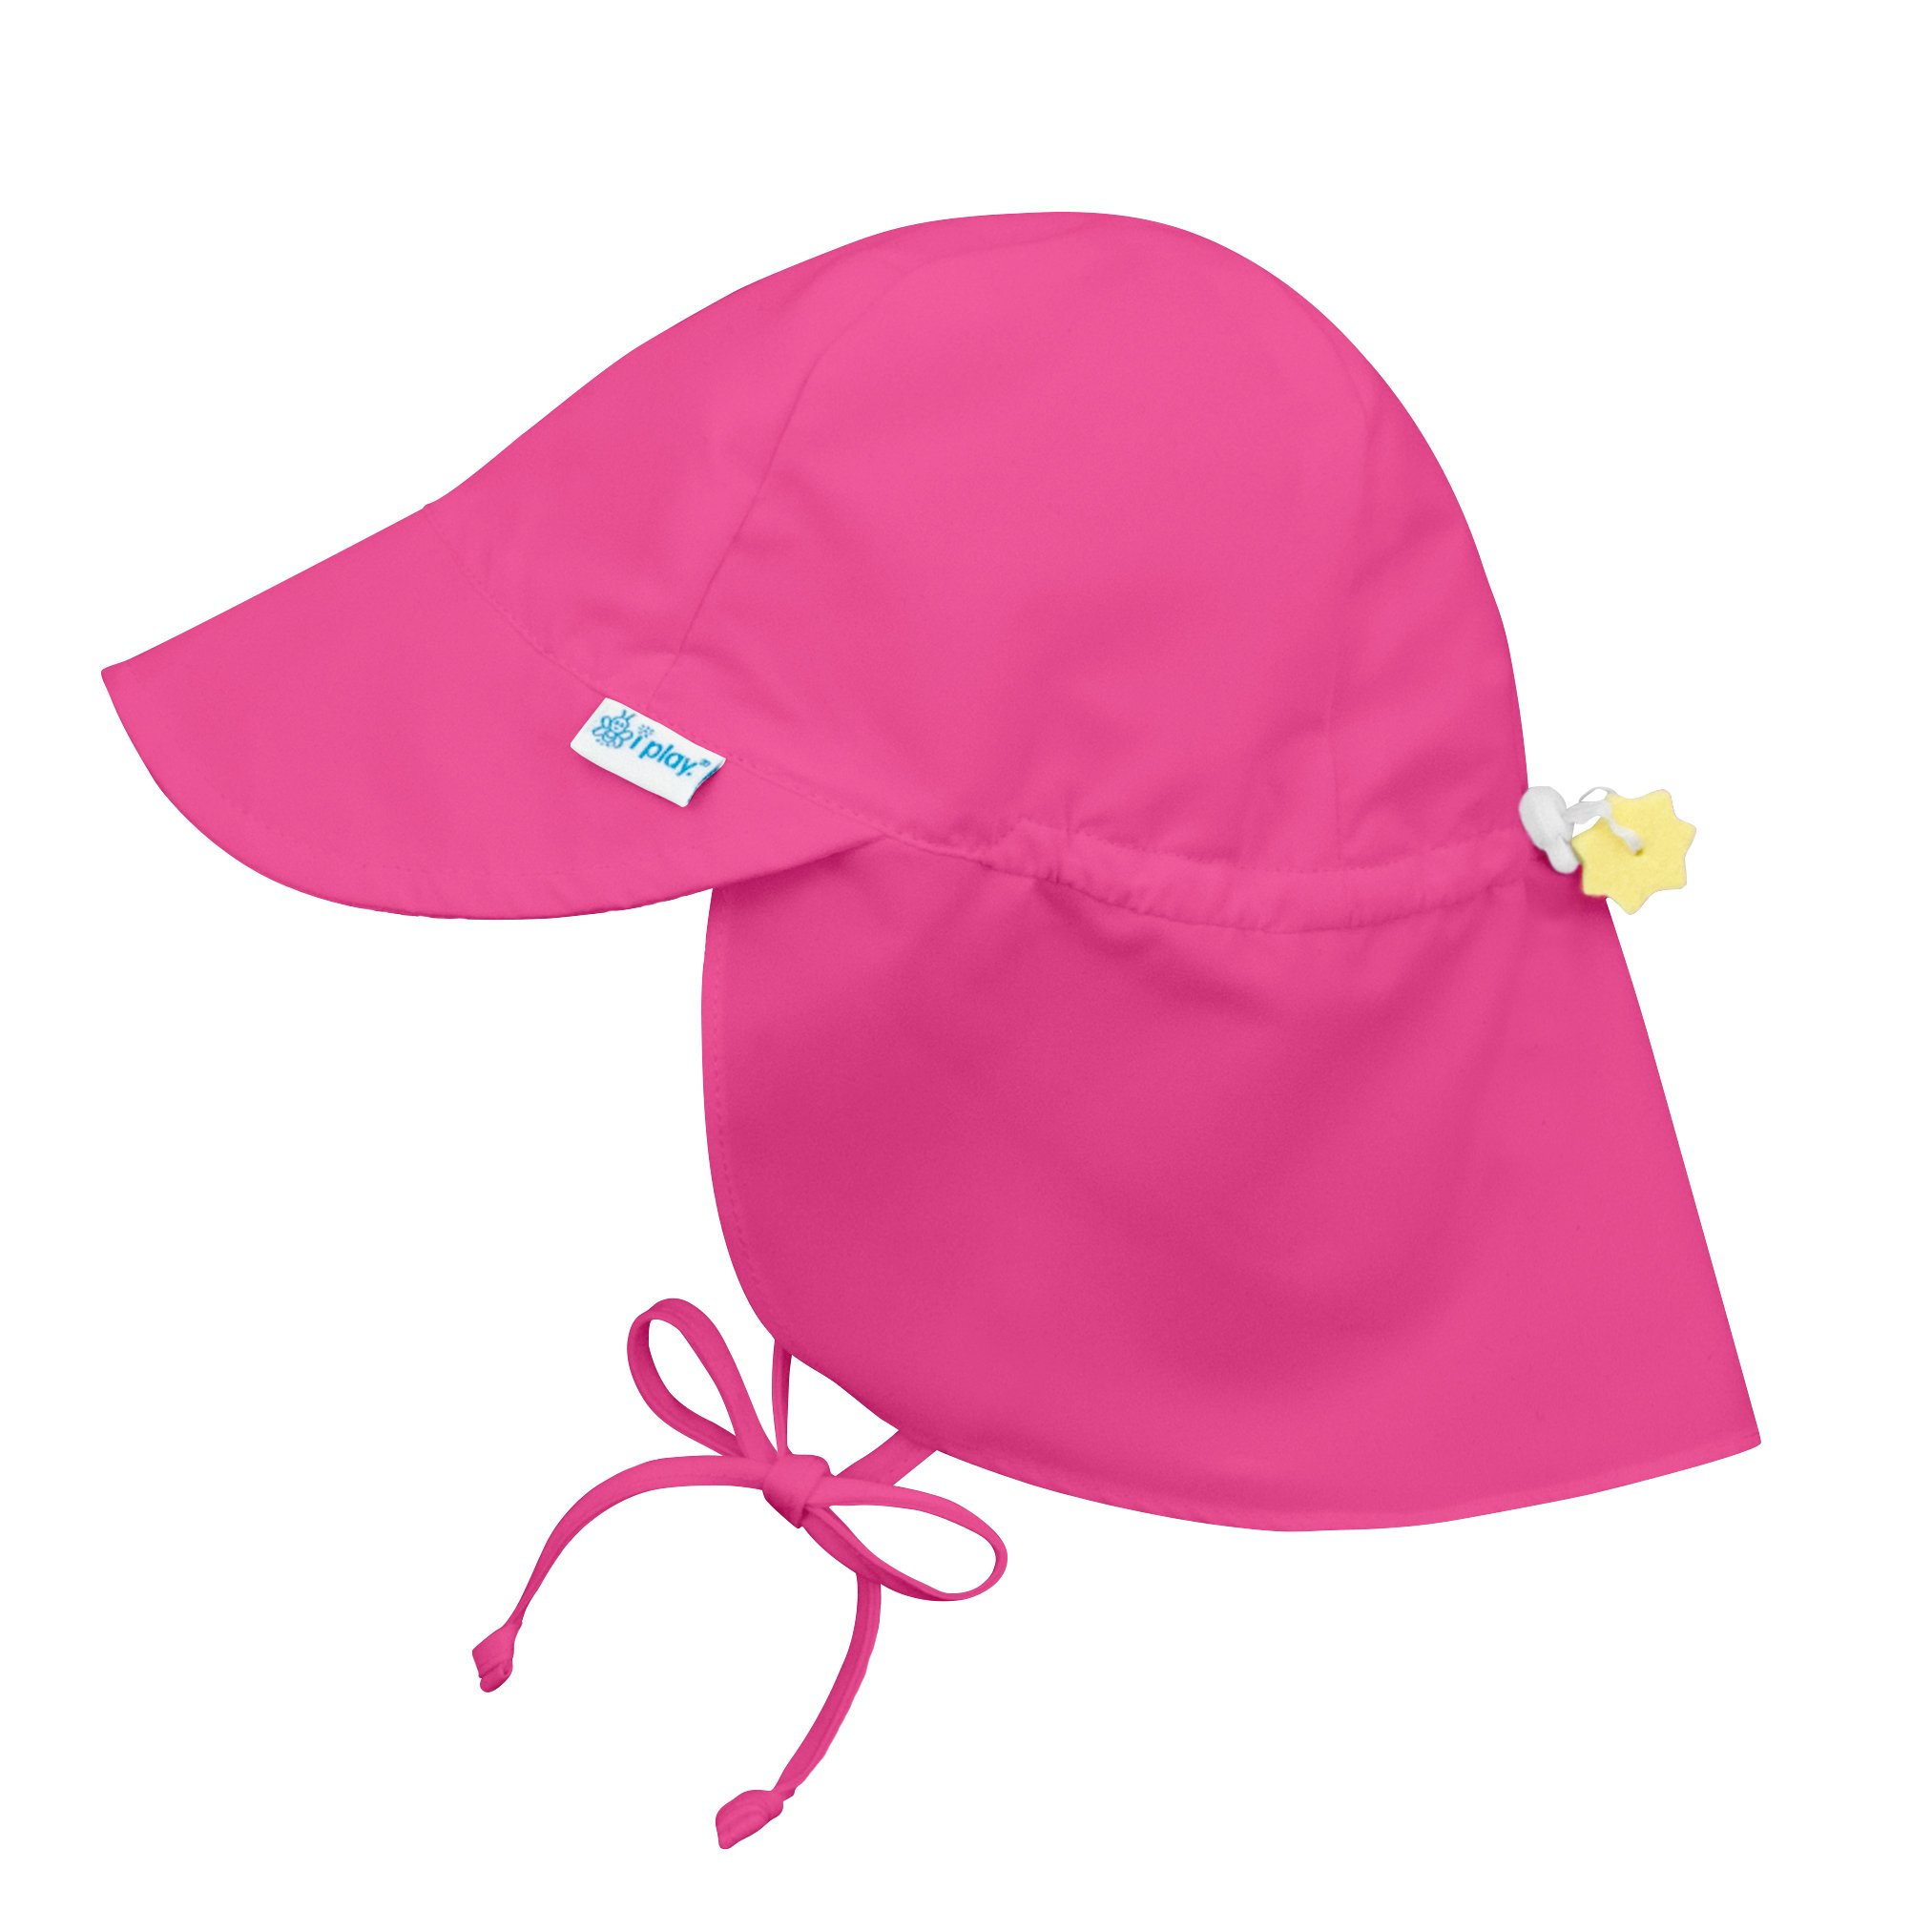 617422bbadf Iplay Baby Infant Toddler Unisex Solid Color Flap Sun Hat   Beach Hat by  Iplay product